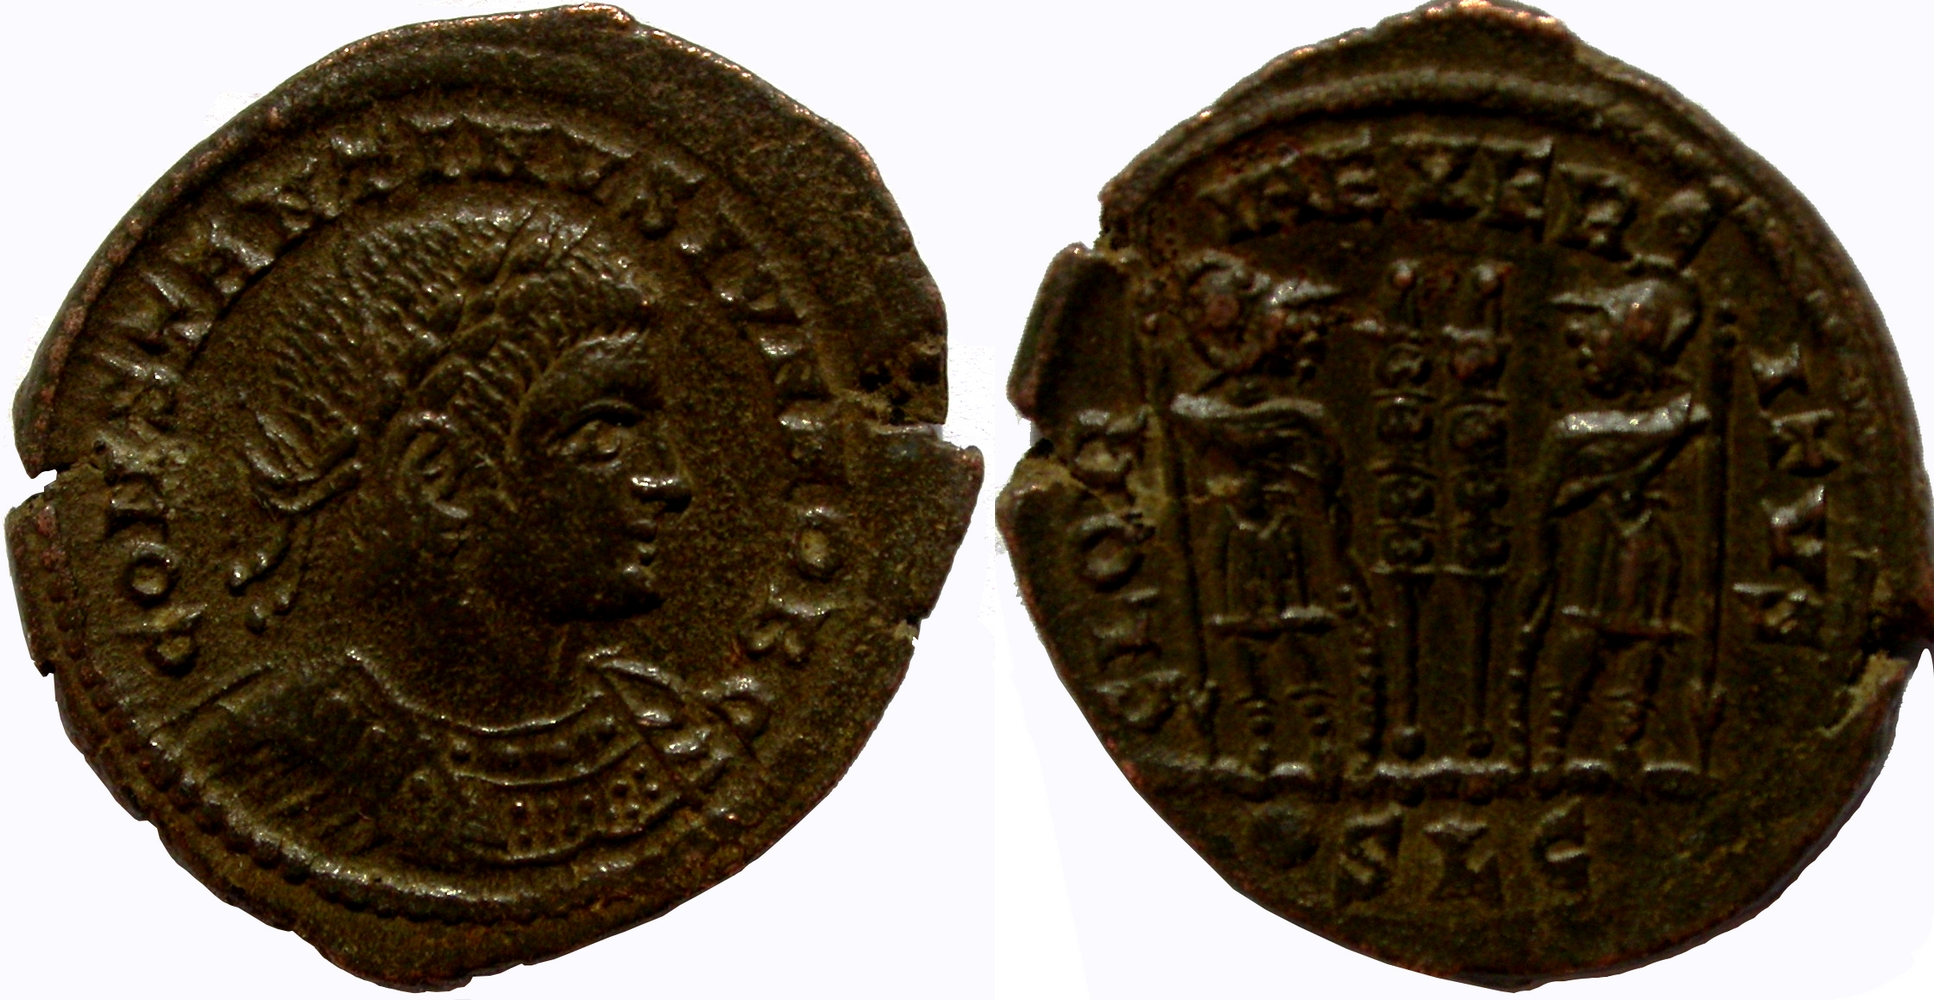 Collection Lombardus - Page 5 723671CONSTANTINIILYONGLORIAEXERCITVSpointSLGRIC24417mm2g43201704